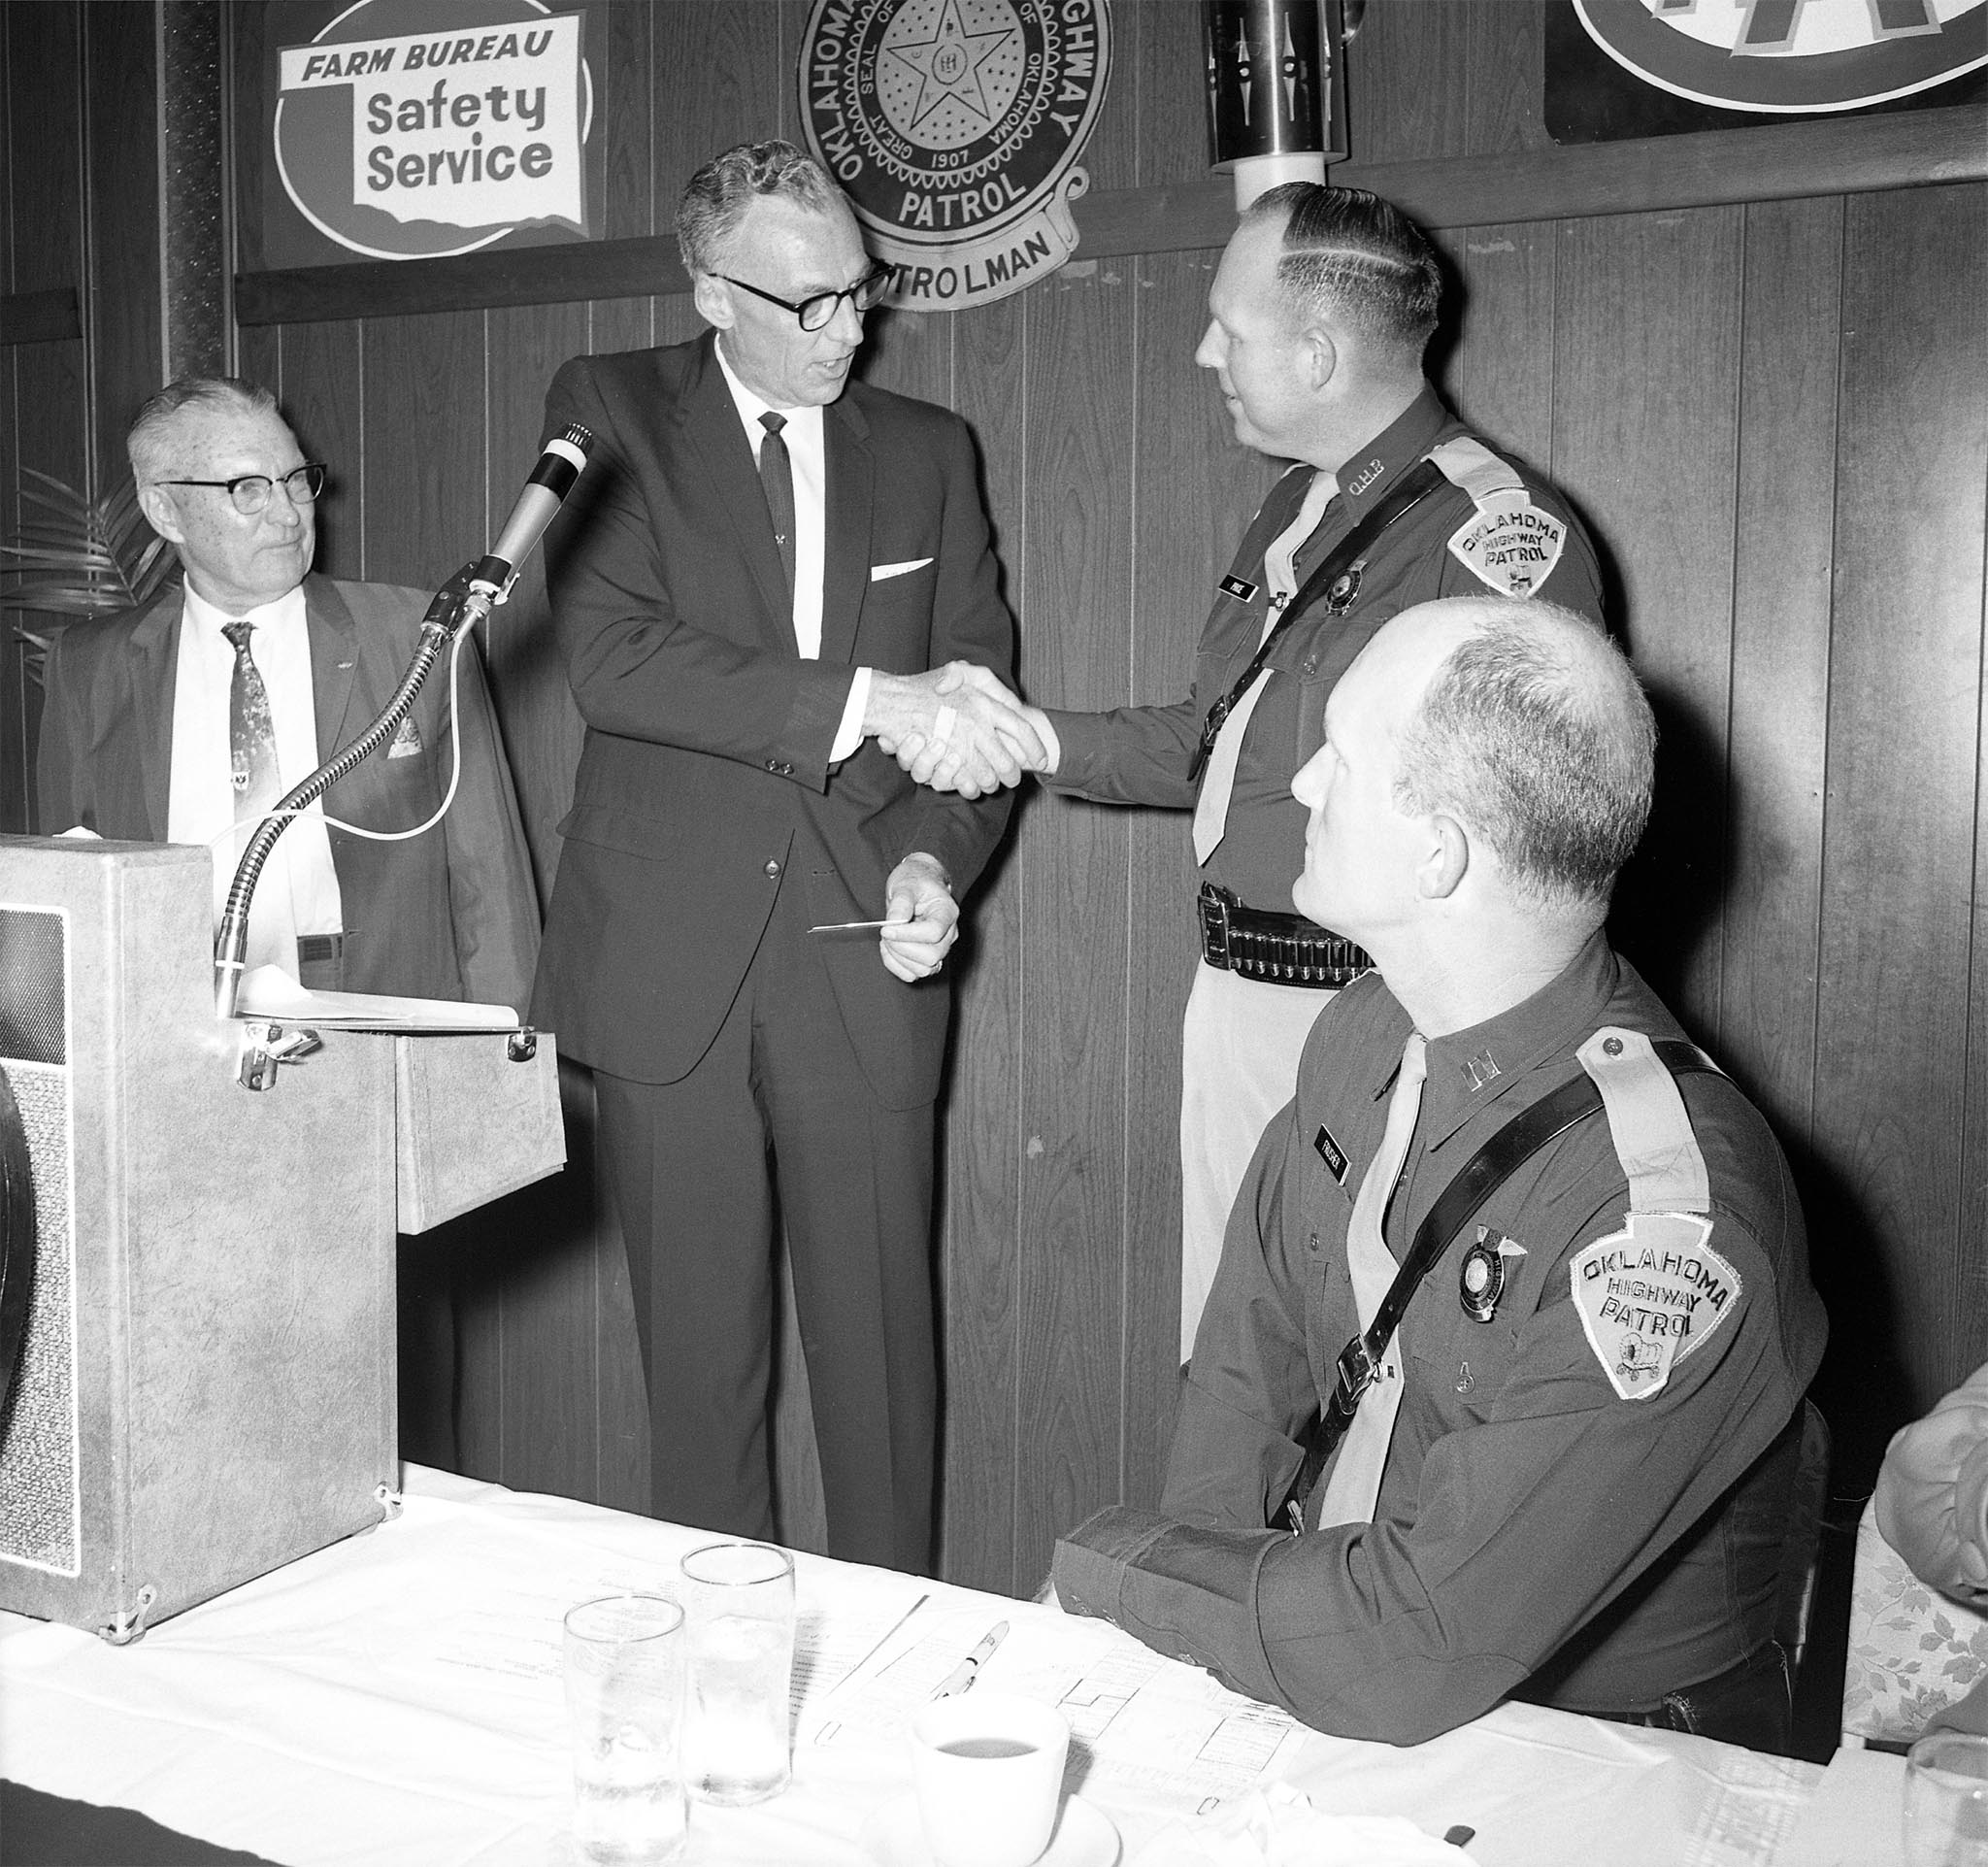 "Ted Payne, Oklahoma Farm Bureau Safety Director (second from left), and Col. L.M. Tidd of the American Automobile Association (left), thanks Trooper Bill Price (second from right) and the Oklahoma Highway Patrol for being a part of the ""Learn and Live"" program just before the show winners were presented. The 1968 program involved five high schools located in central Oklahoma, including schools in Guthrie, Chickasha, Moore, Shawnee and Putnam City. Teams participated in the quiz-based television show by answering questions taken from the Oklahoma traffic code."